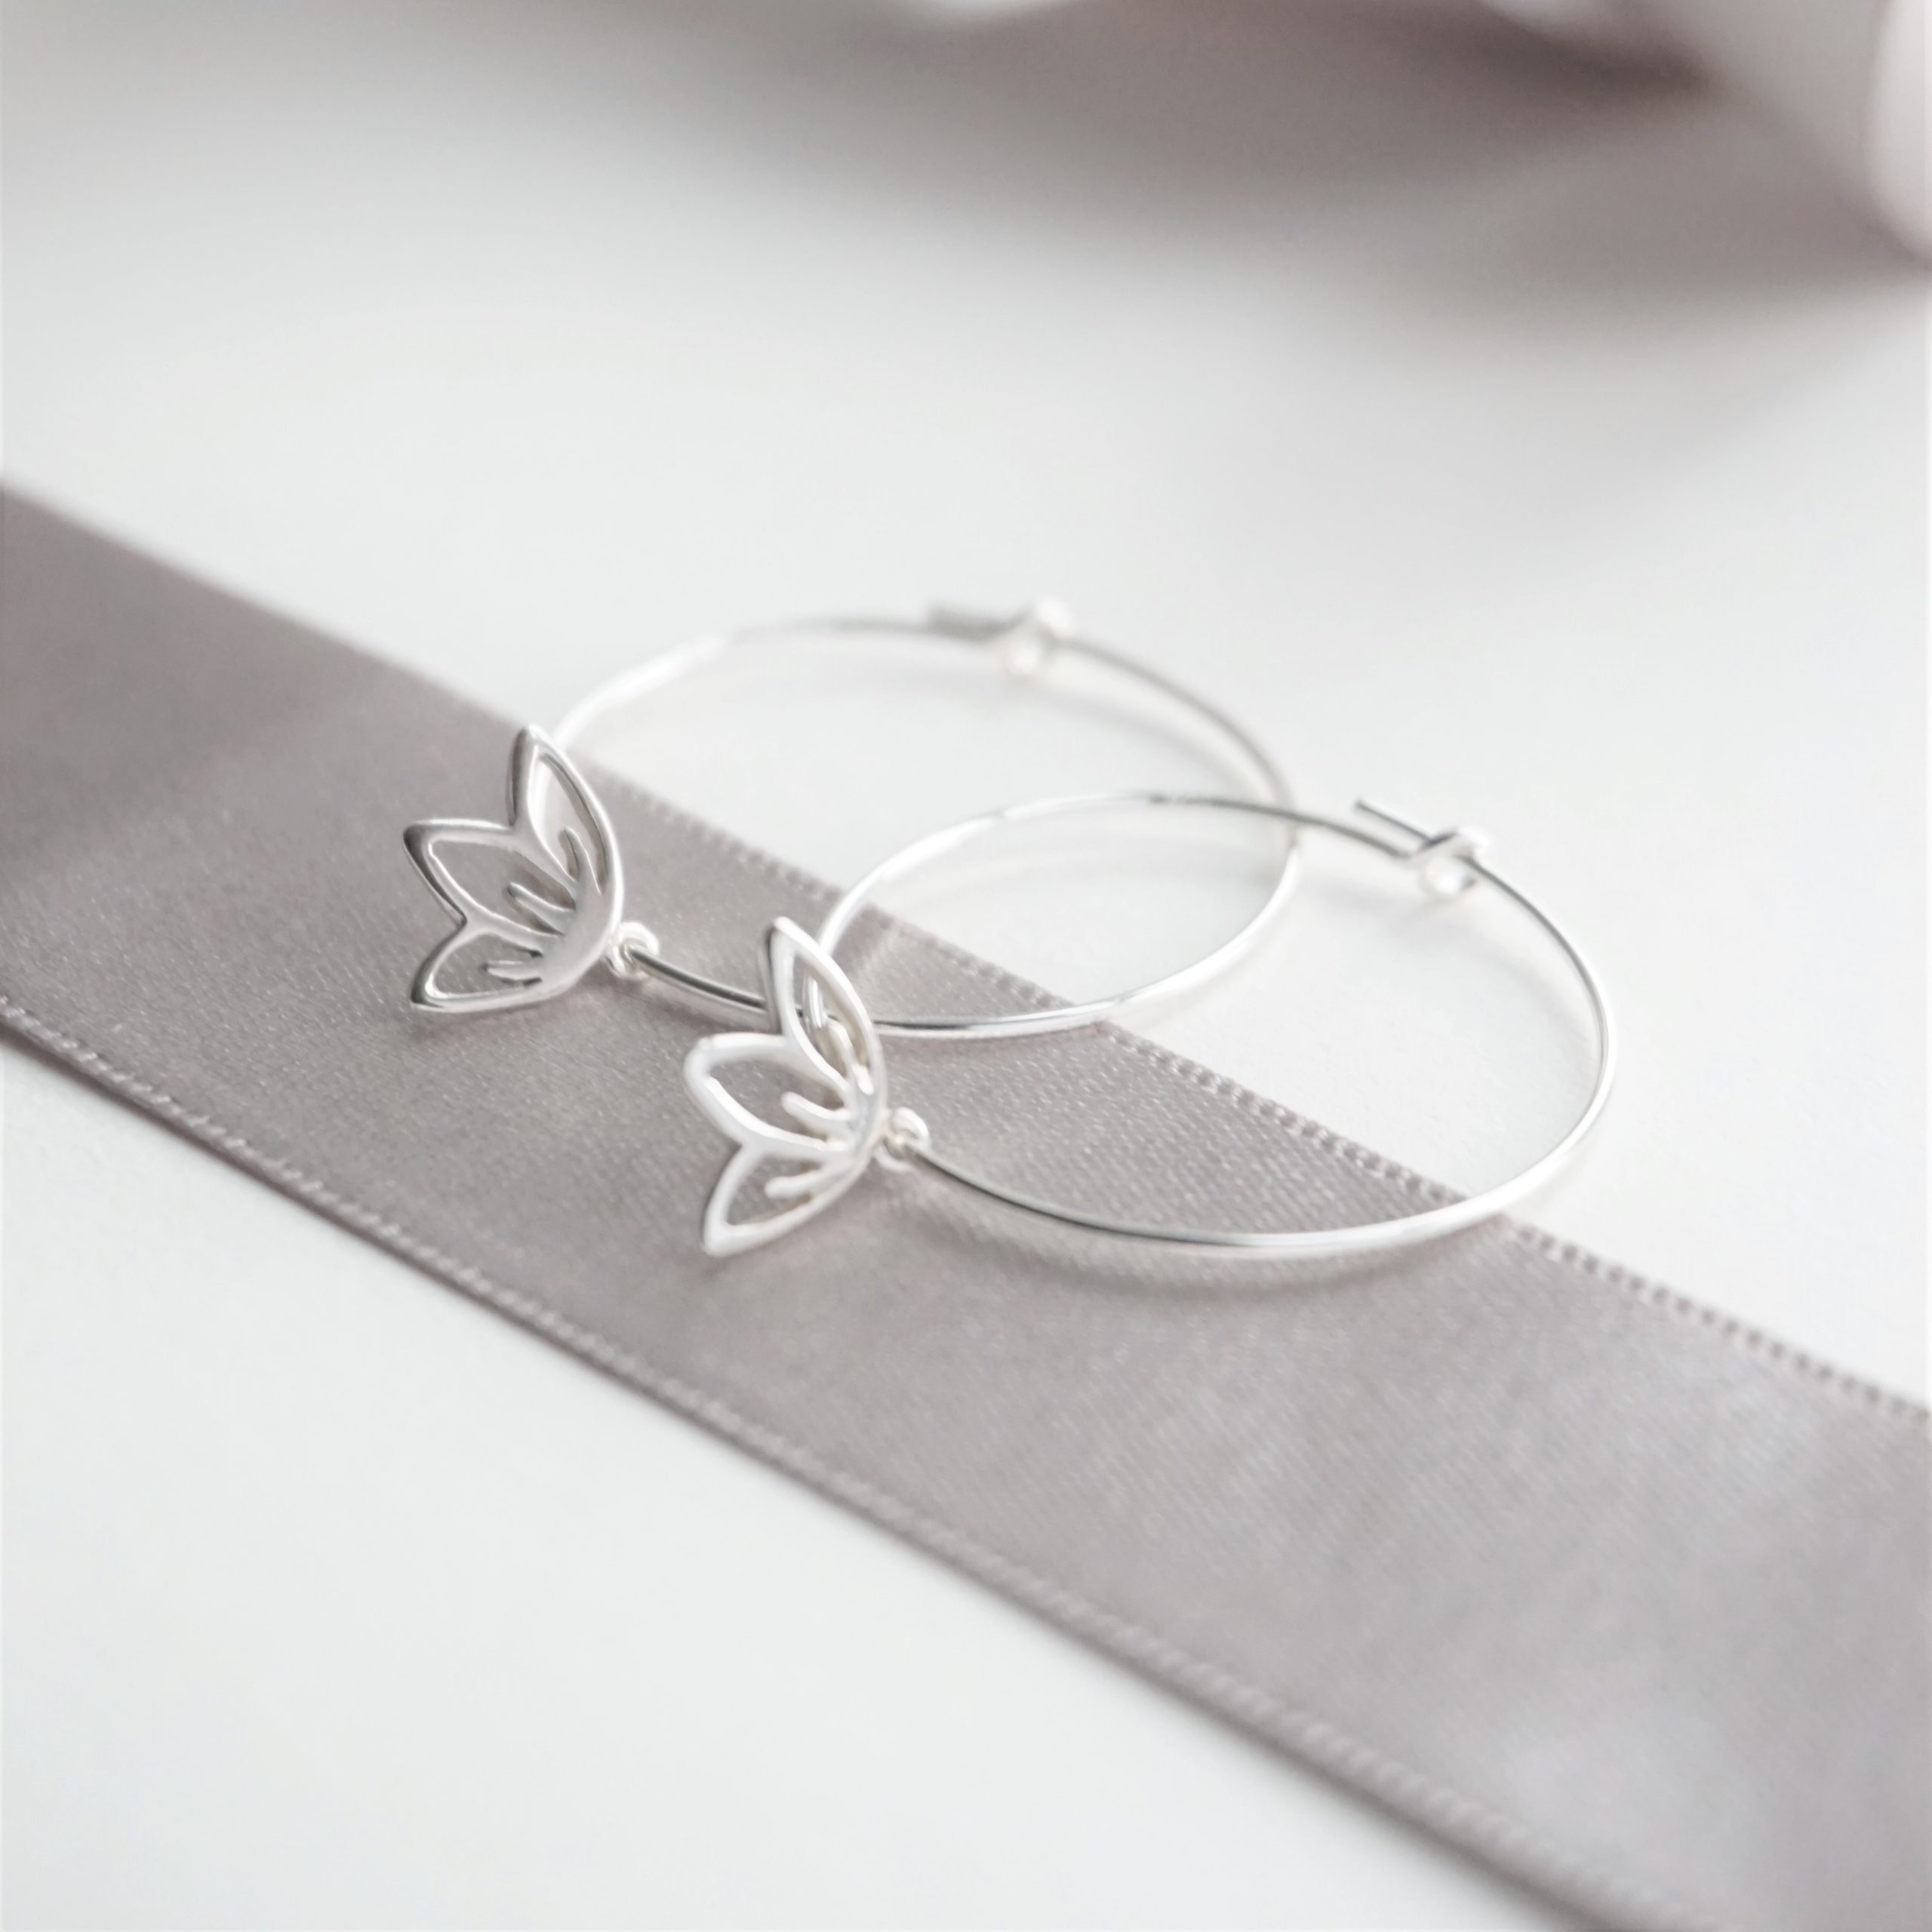 Sterling silver hoop earrings with blossom charms